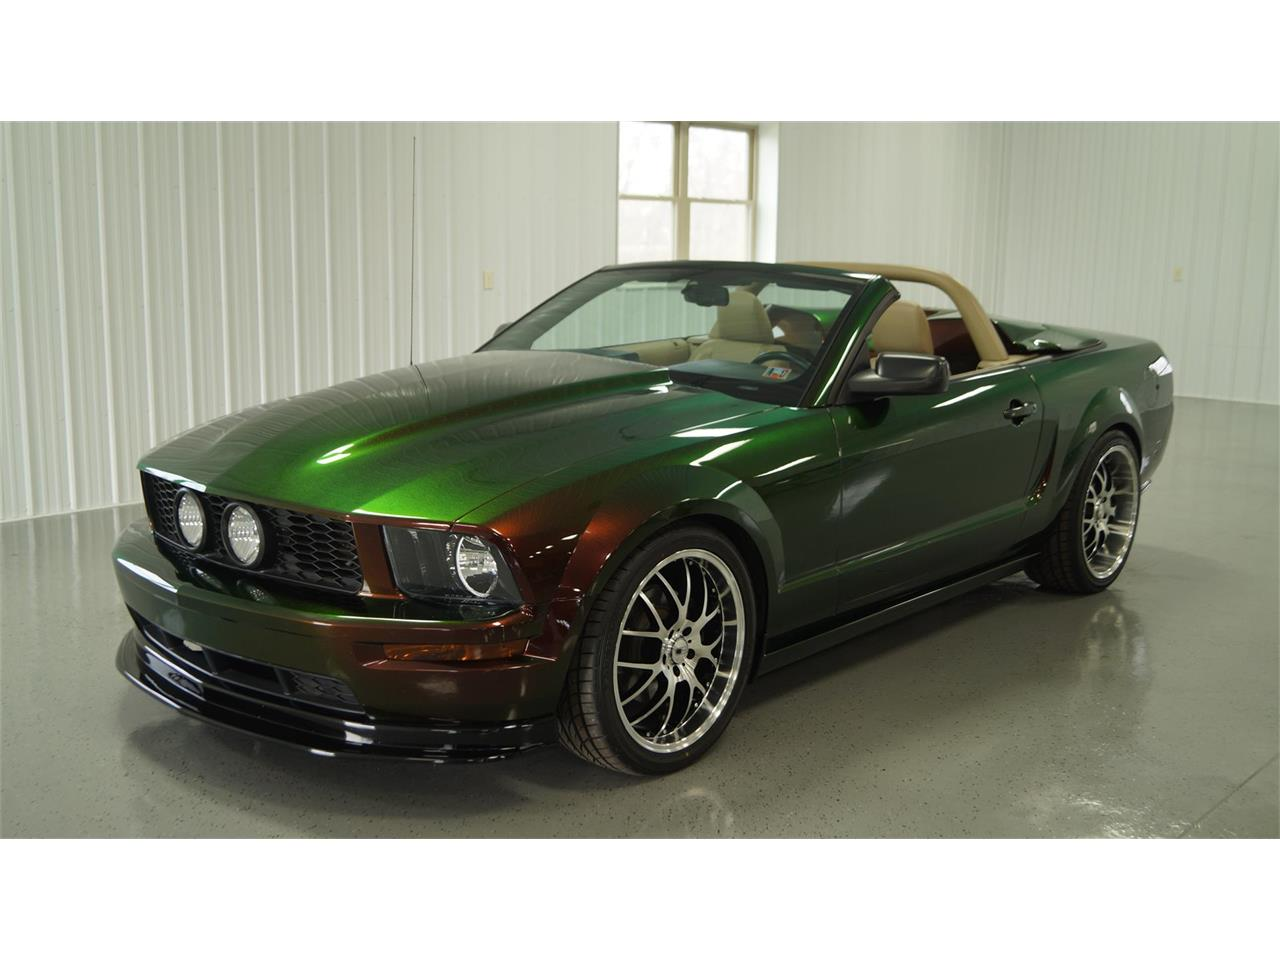 Large picture of 07 mustang gt gmsu